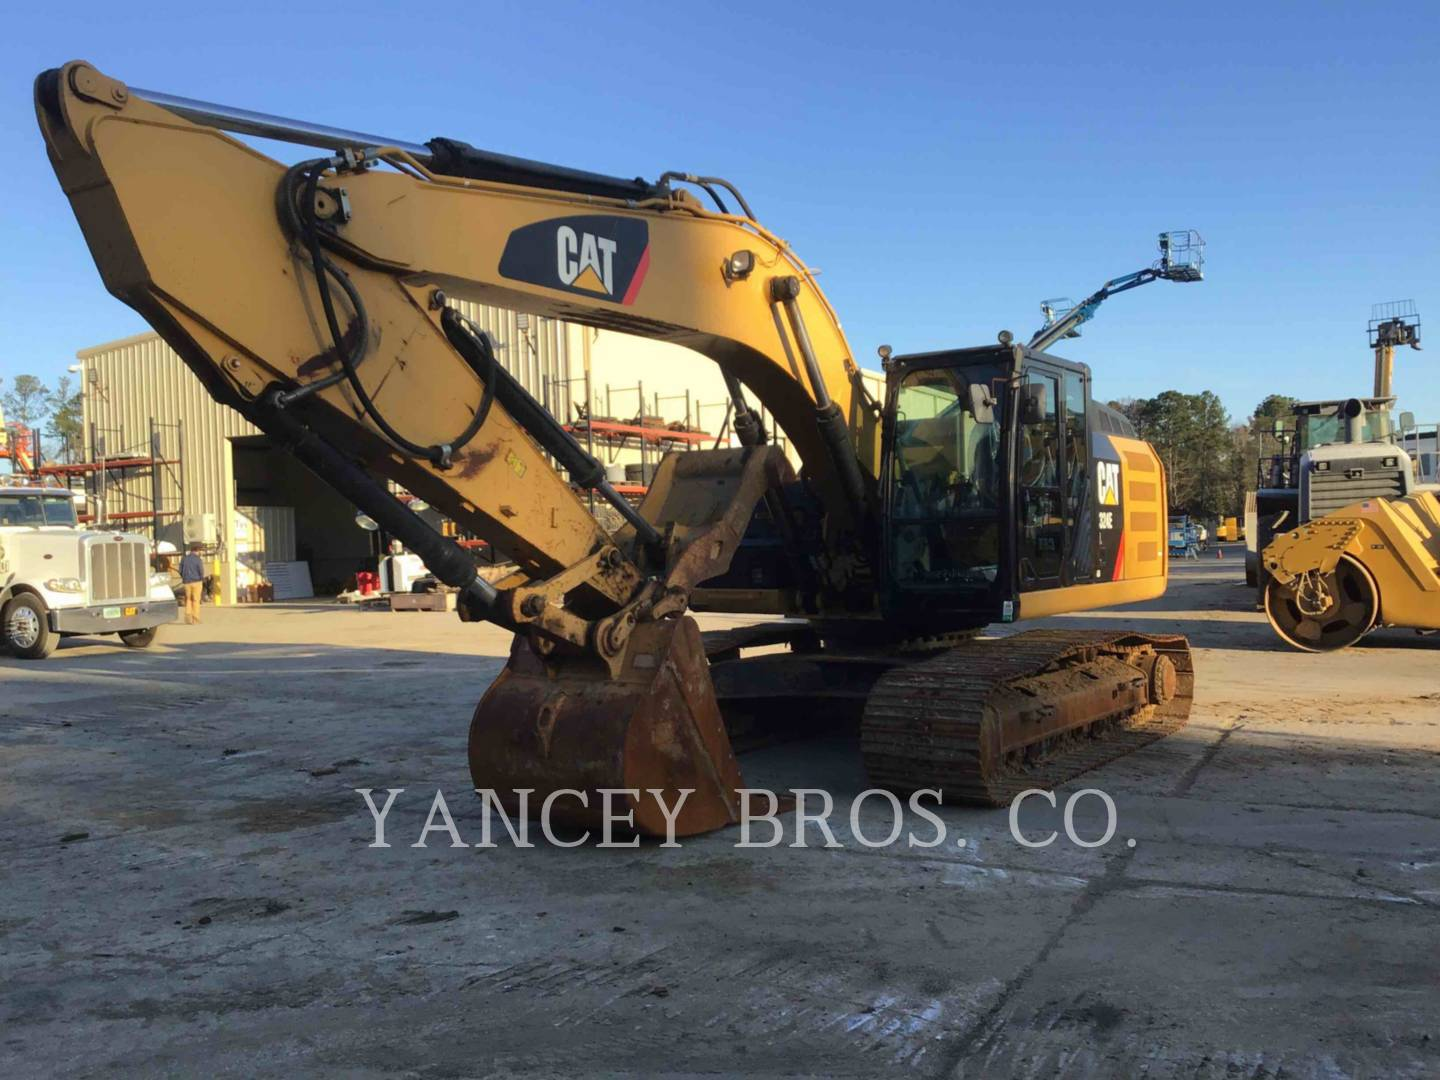 2014 - CATERPILLAR - 324EL TH